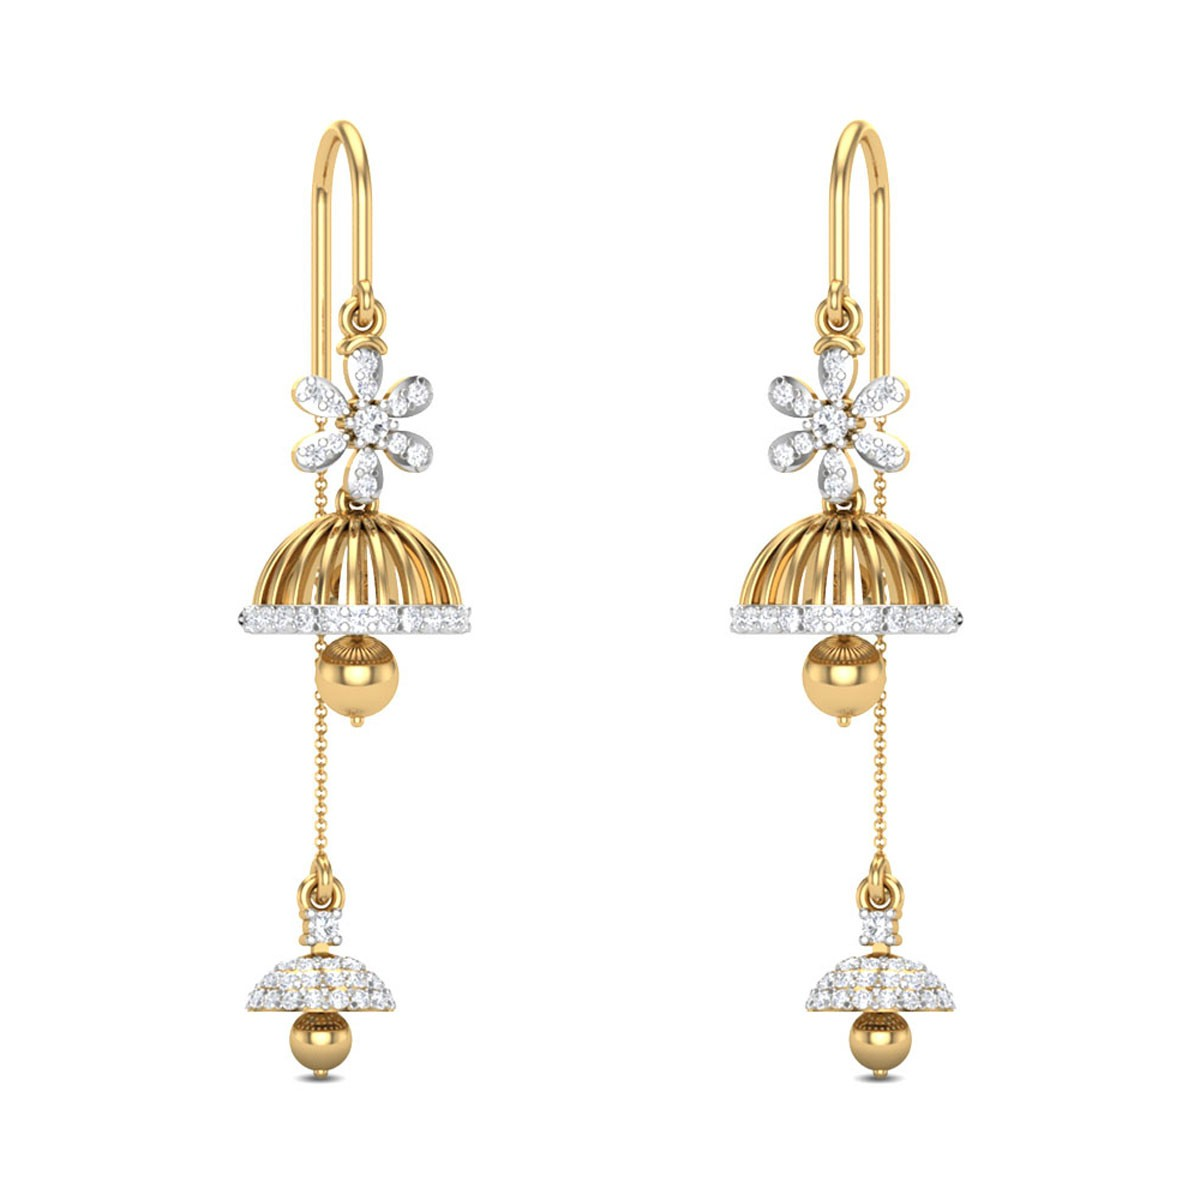 Jaide Floral Sui Dhaga Diamond Earrings